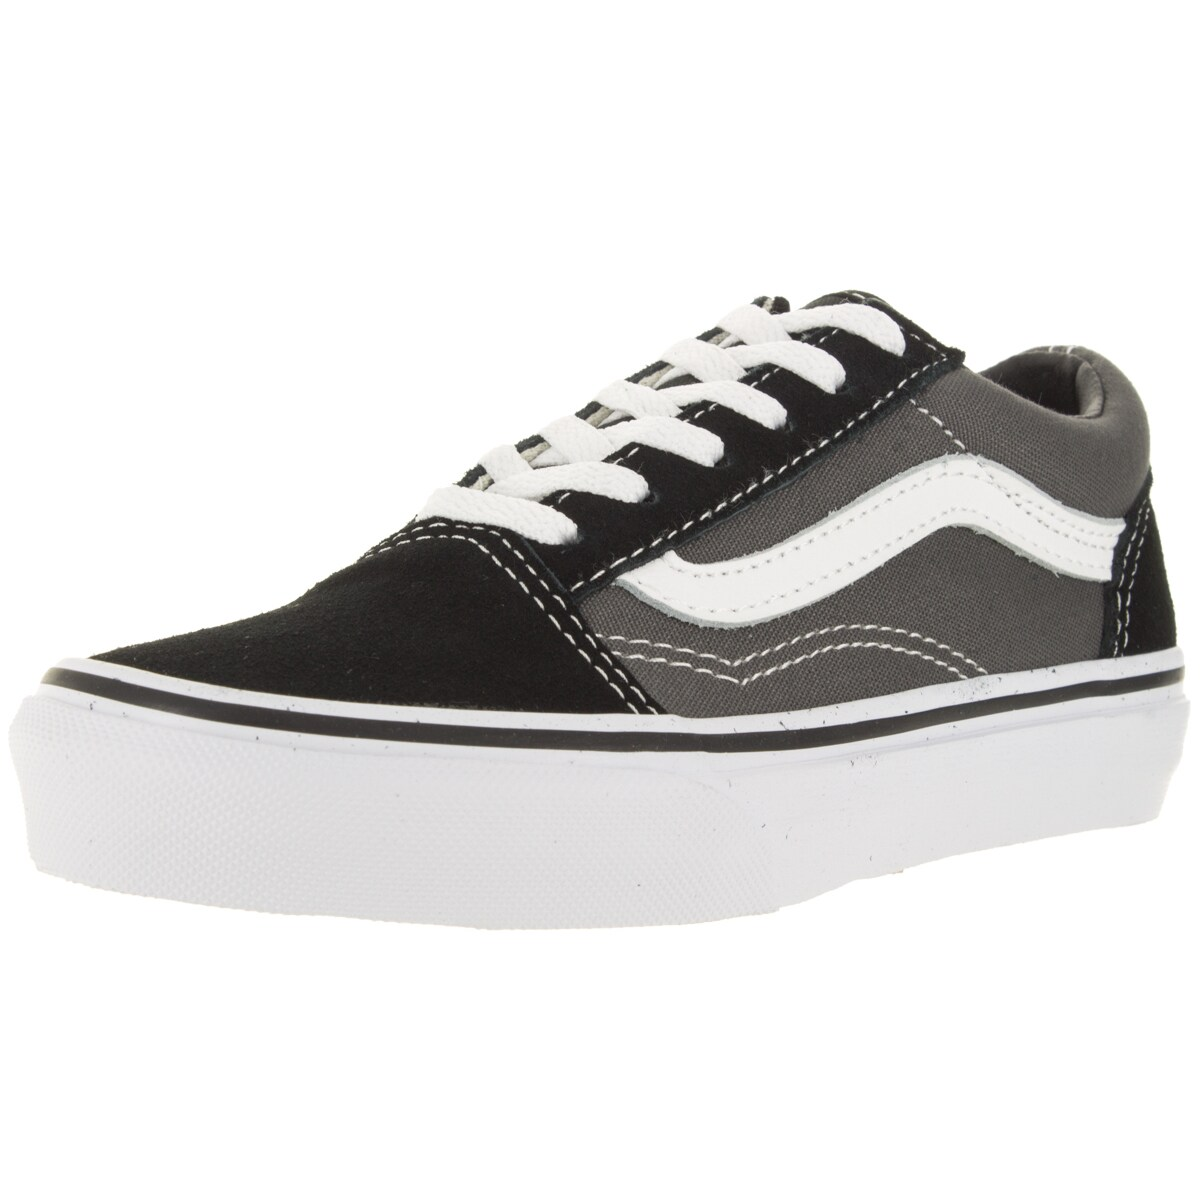 a58c69fd96 Shop Vans Kid s Old Skool Black Pewter Skate Shoe - Free Shipping On Orders  Over  45 - Overstock - 12324535